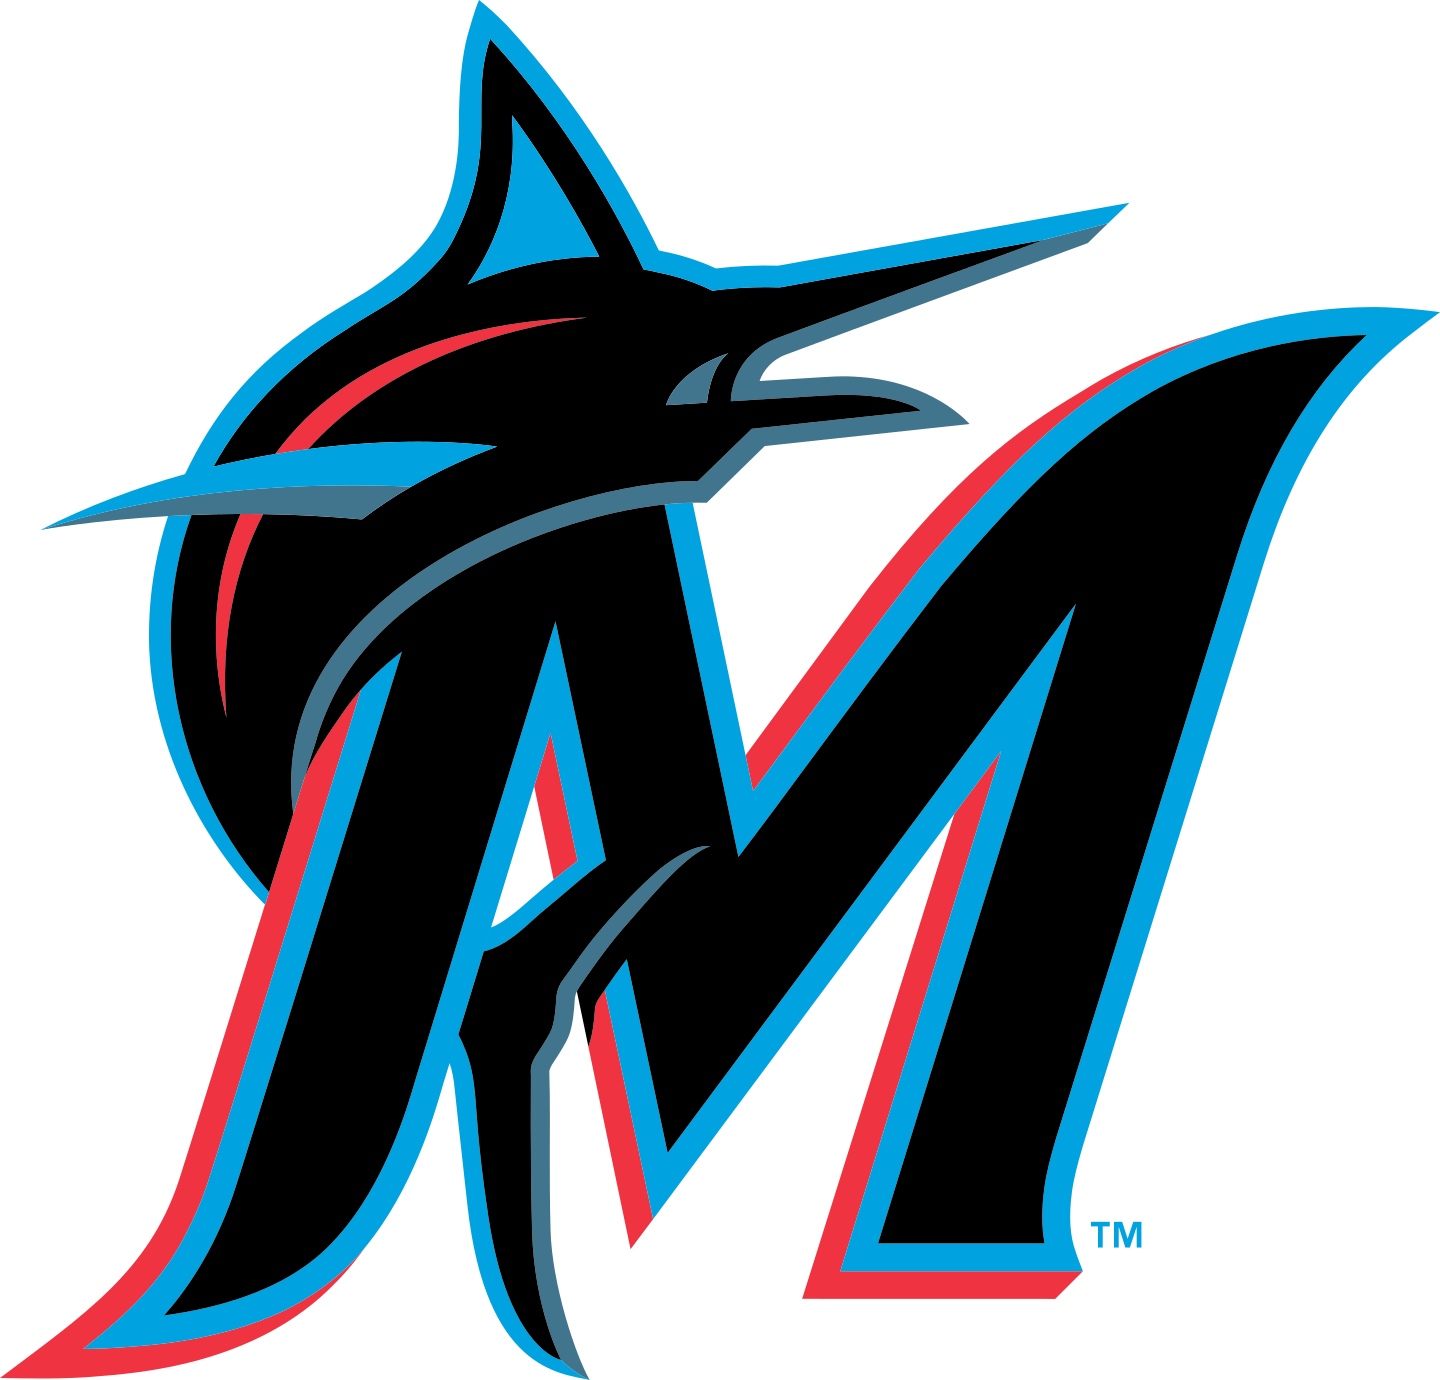 miami marlins logo 2 - Miami Marlins Logo